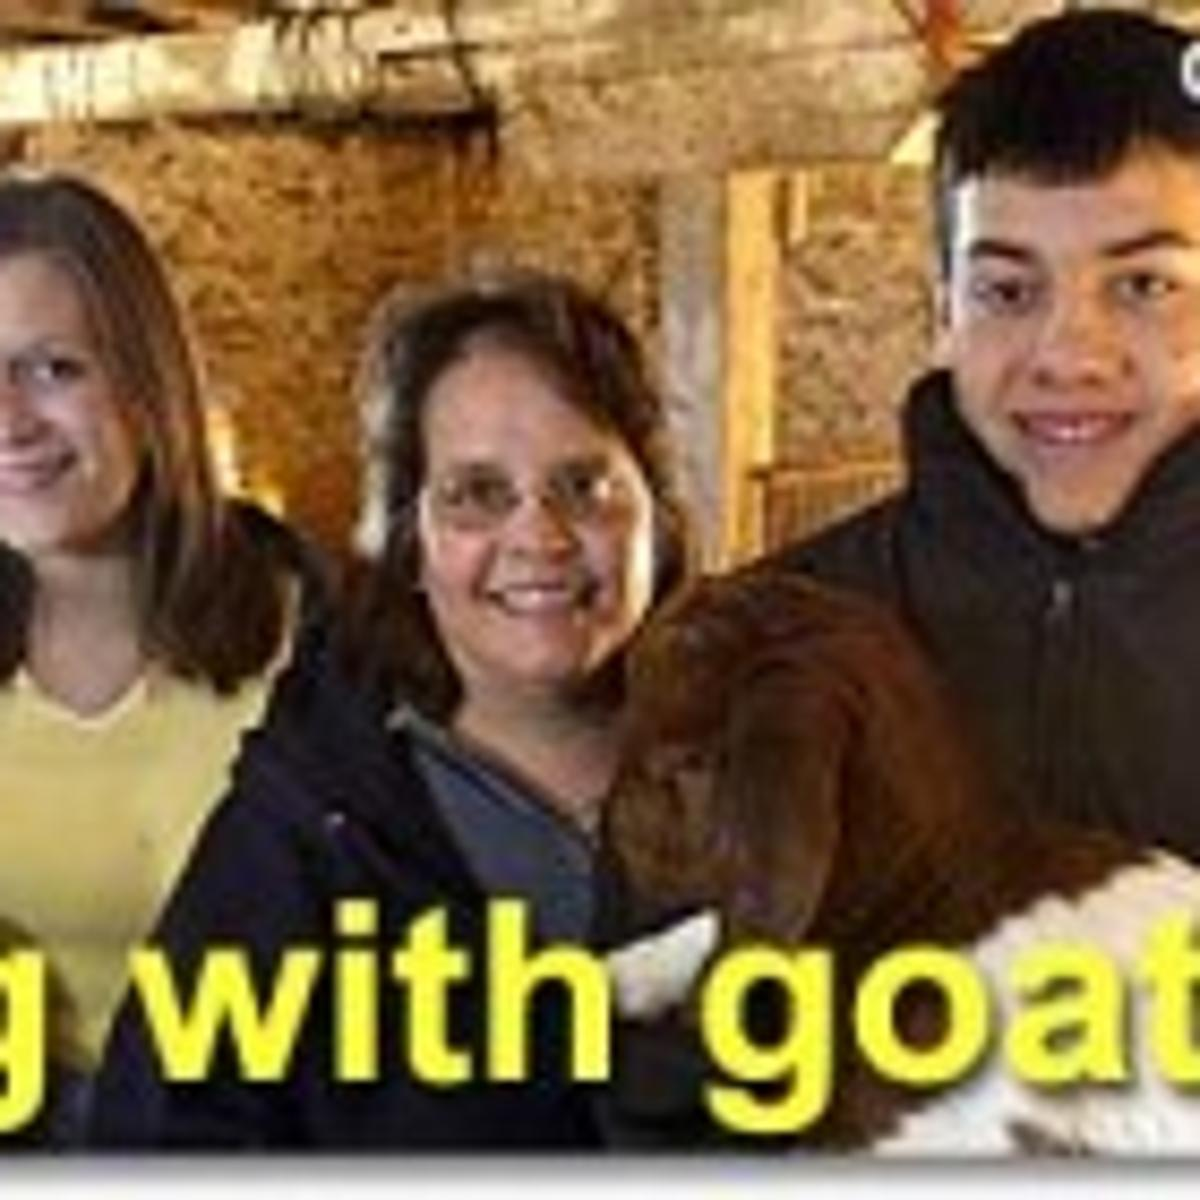 Going with goat: Iowans catch on to raising goats as more